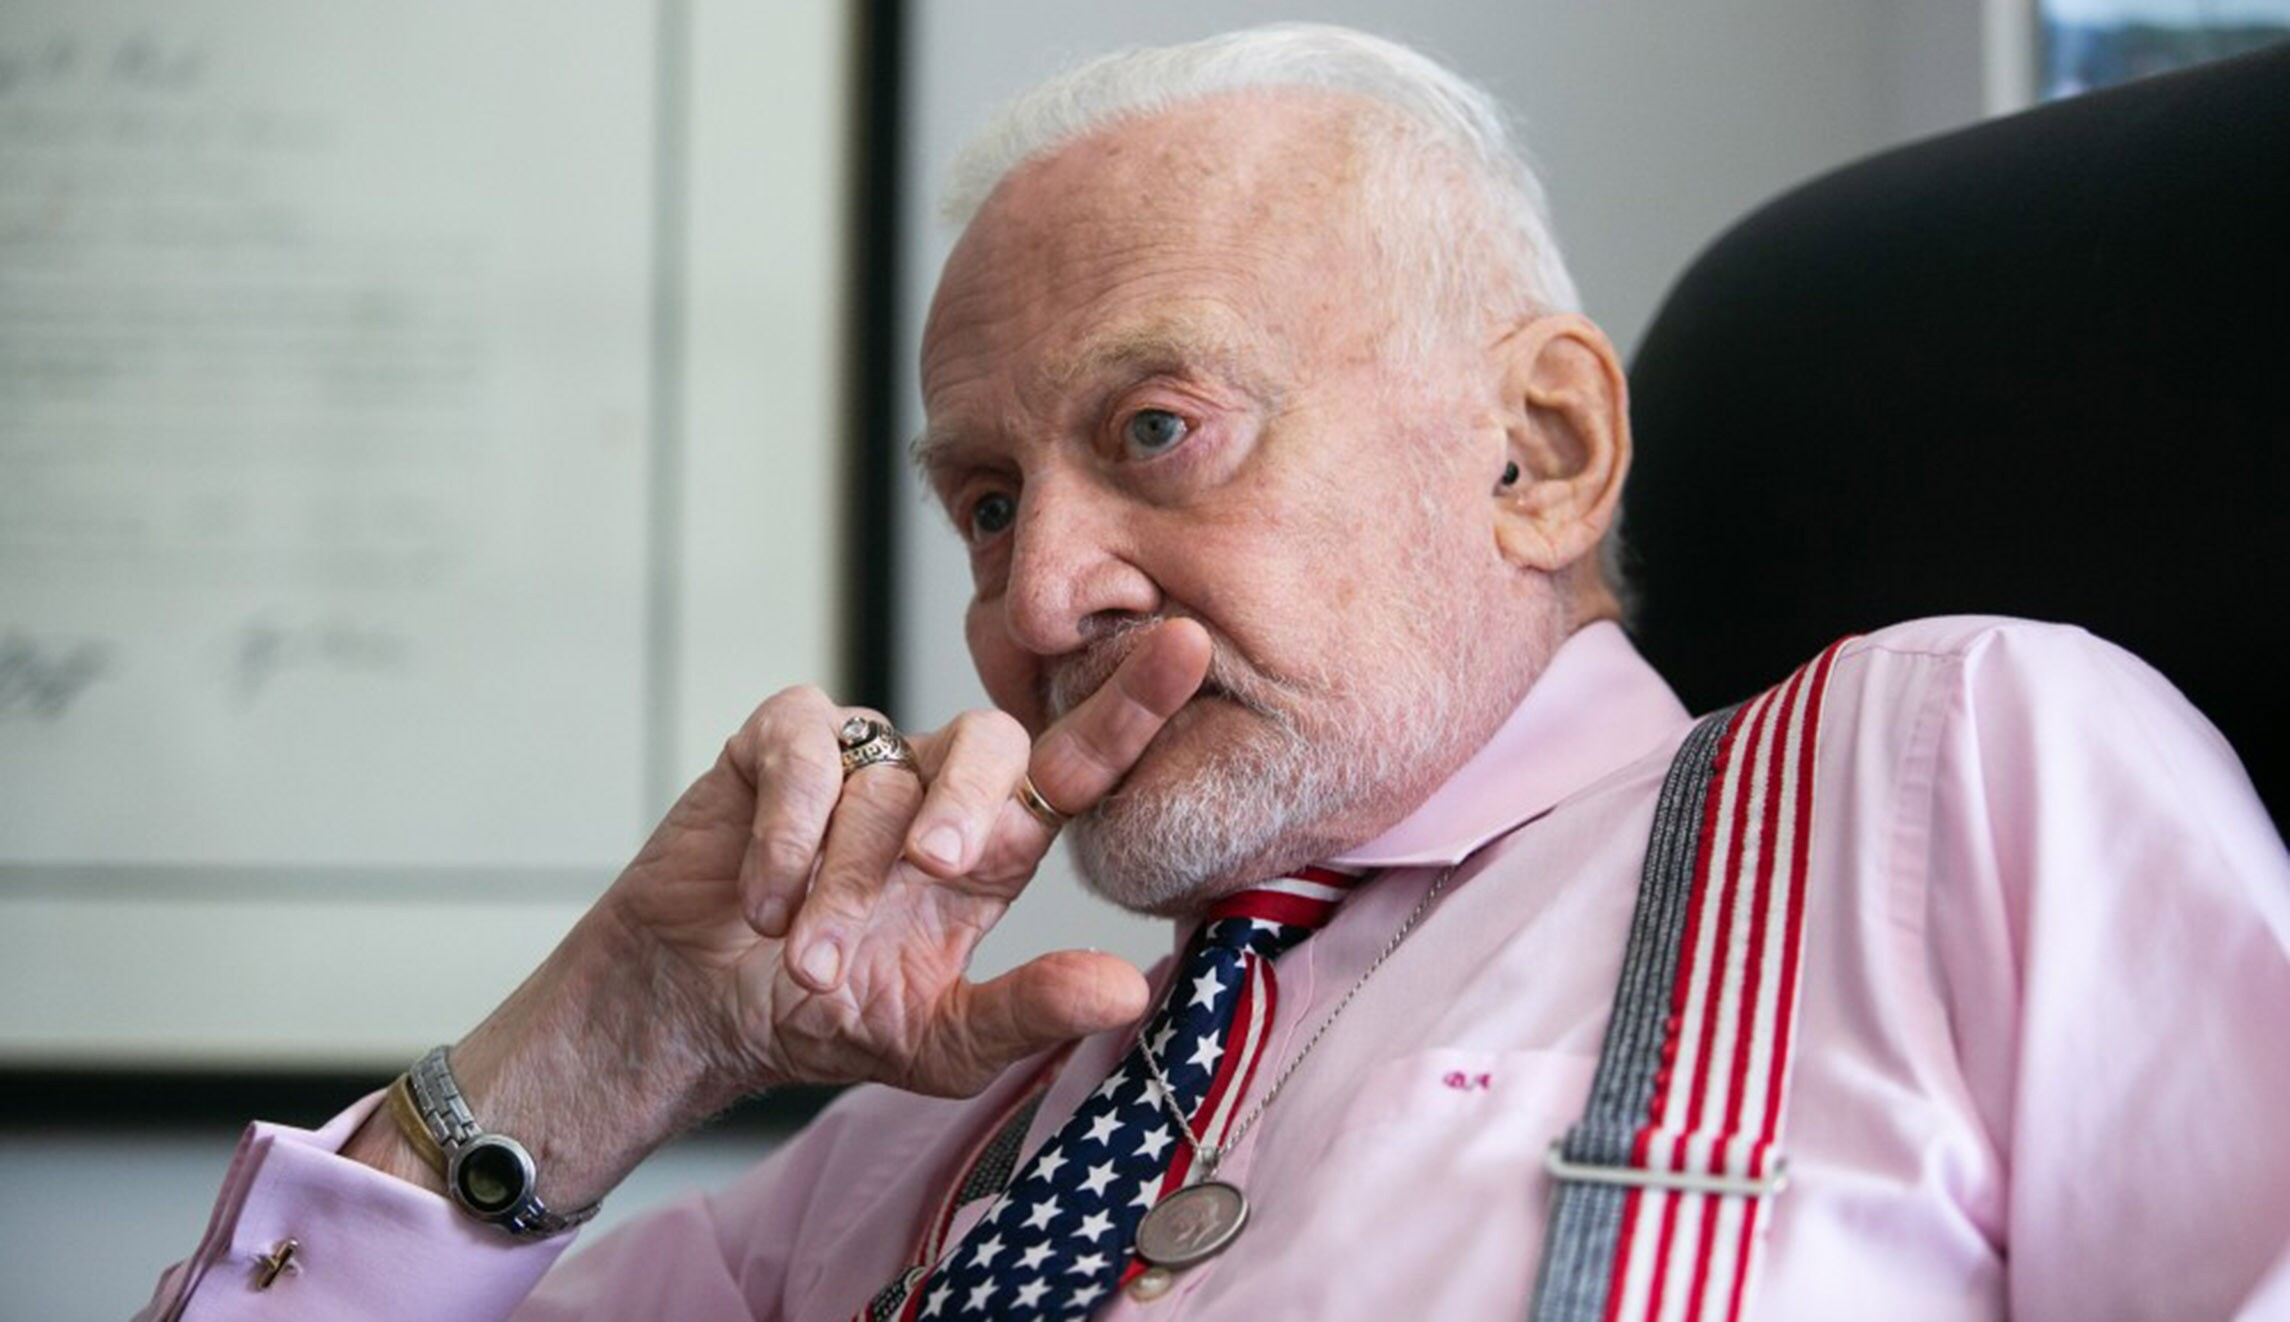 EXCLUSIVE: Buzz Aldrin wants to go back to the moon —as a first step to putting settlers on Mars